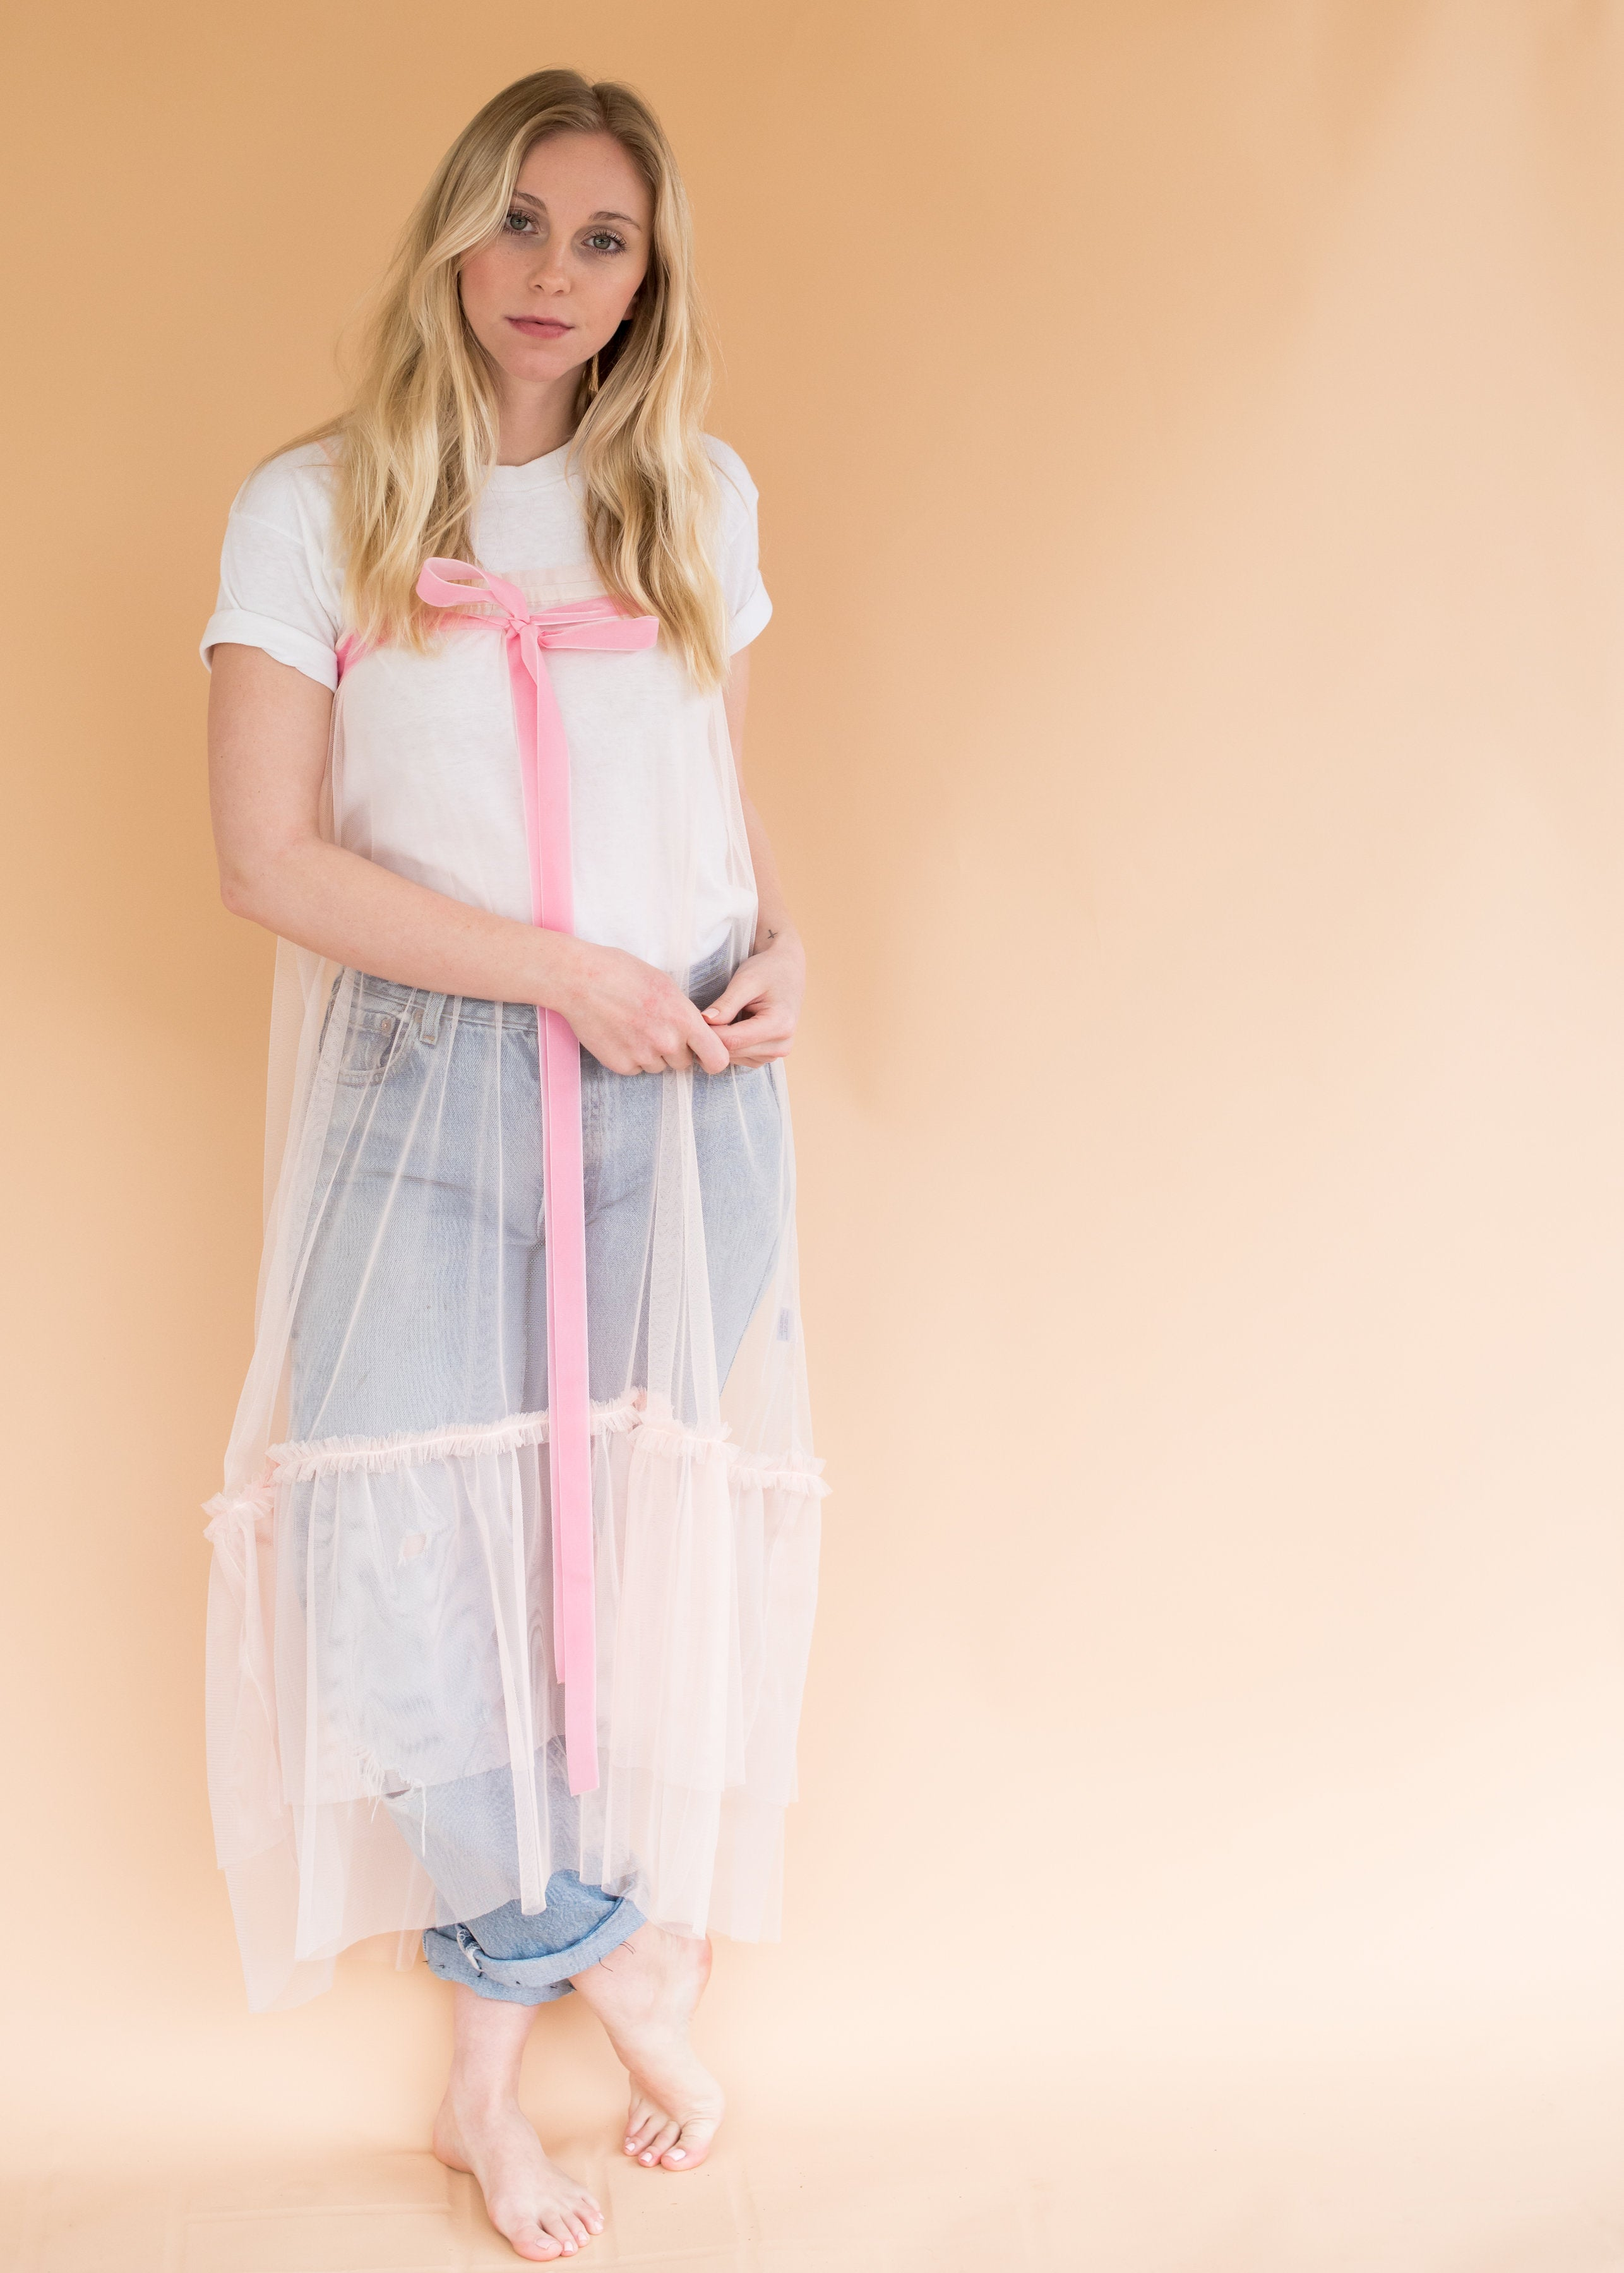 Pink Whimsy Dress - Women's Sheer Tulle Dress with Ribbon and Ruffles